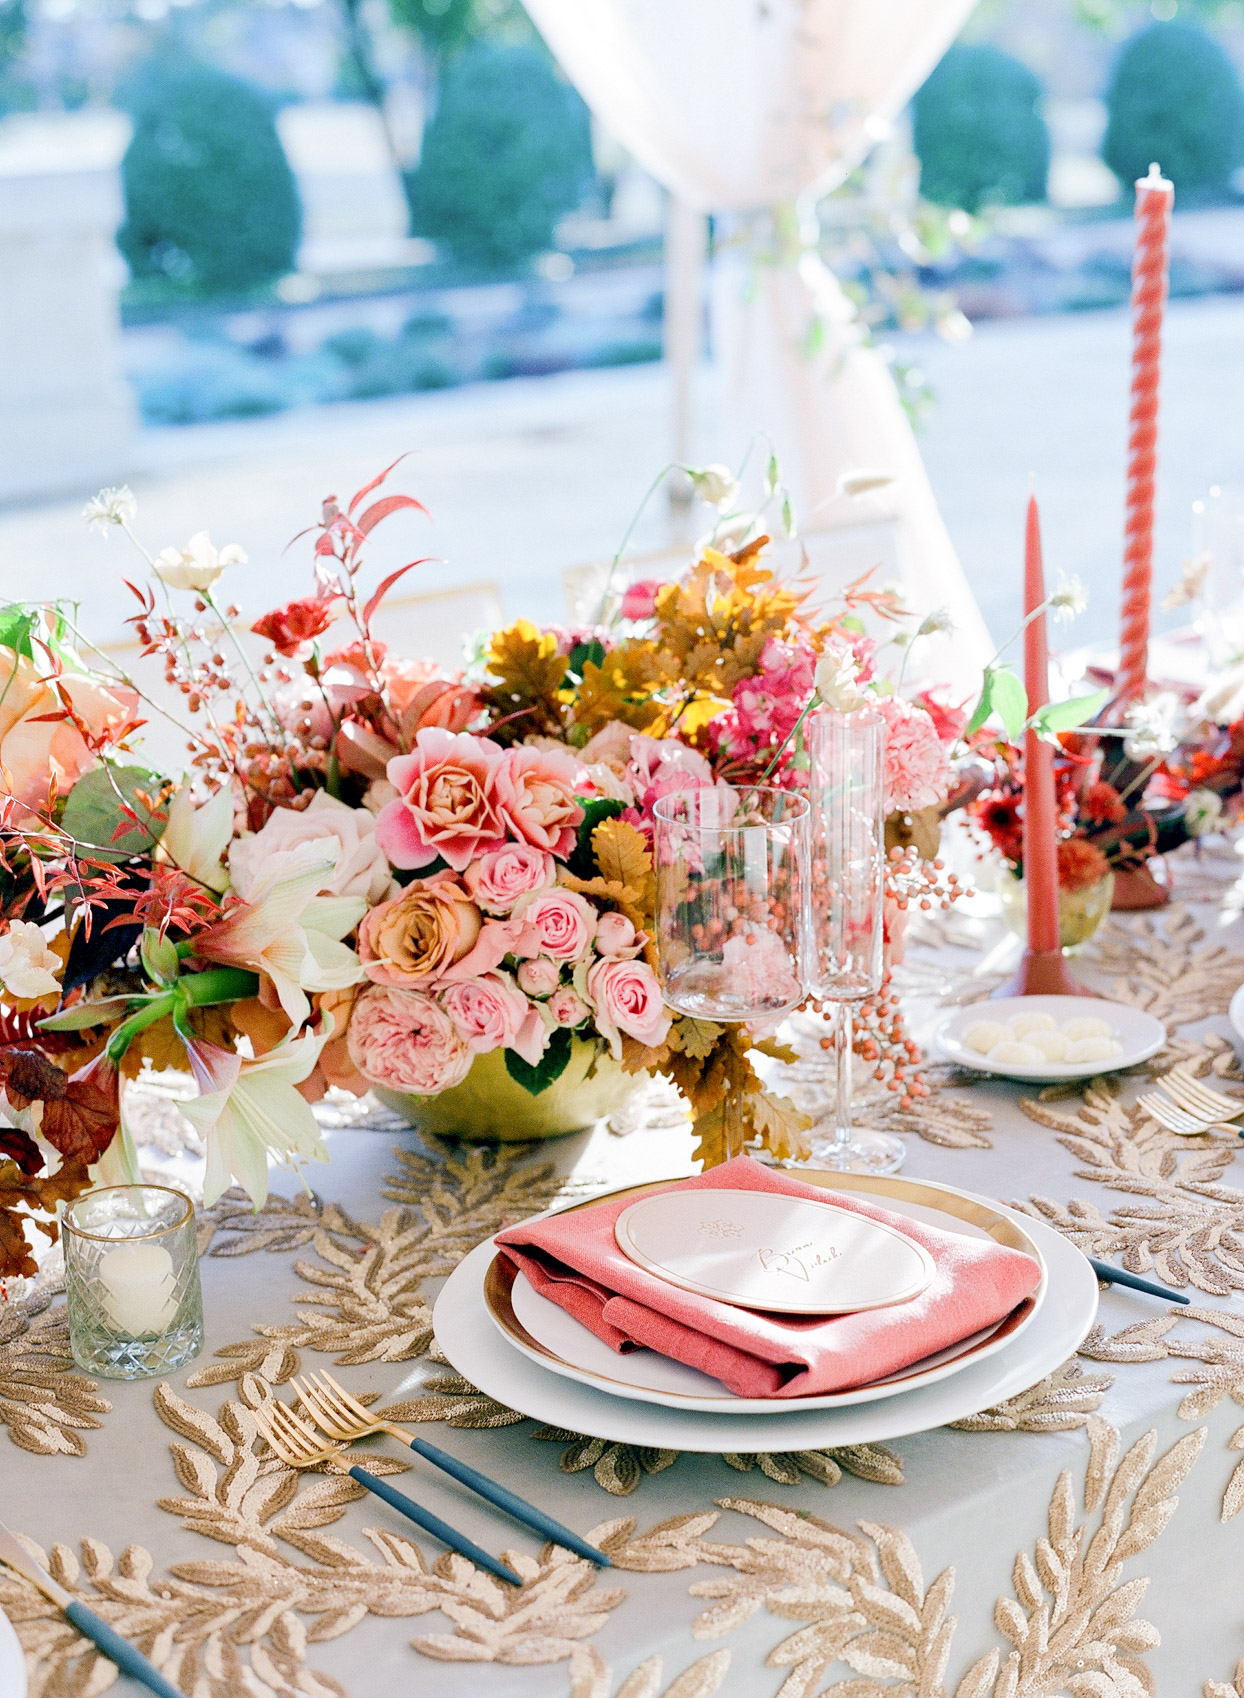 detail shot of wedding table with blue and gold cloth and red decor